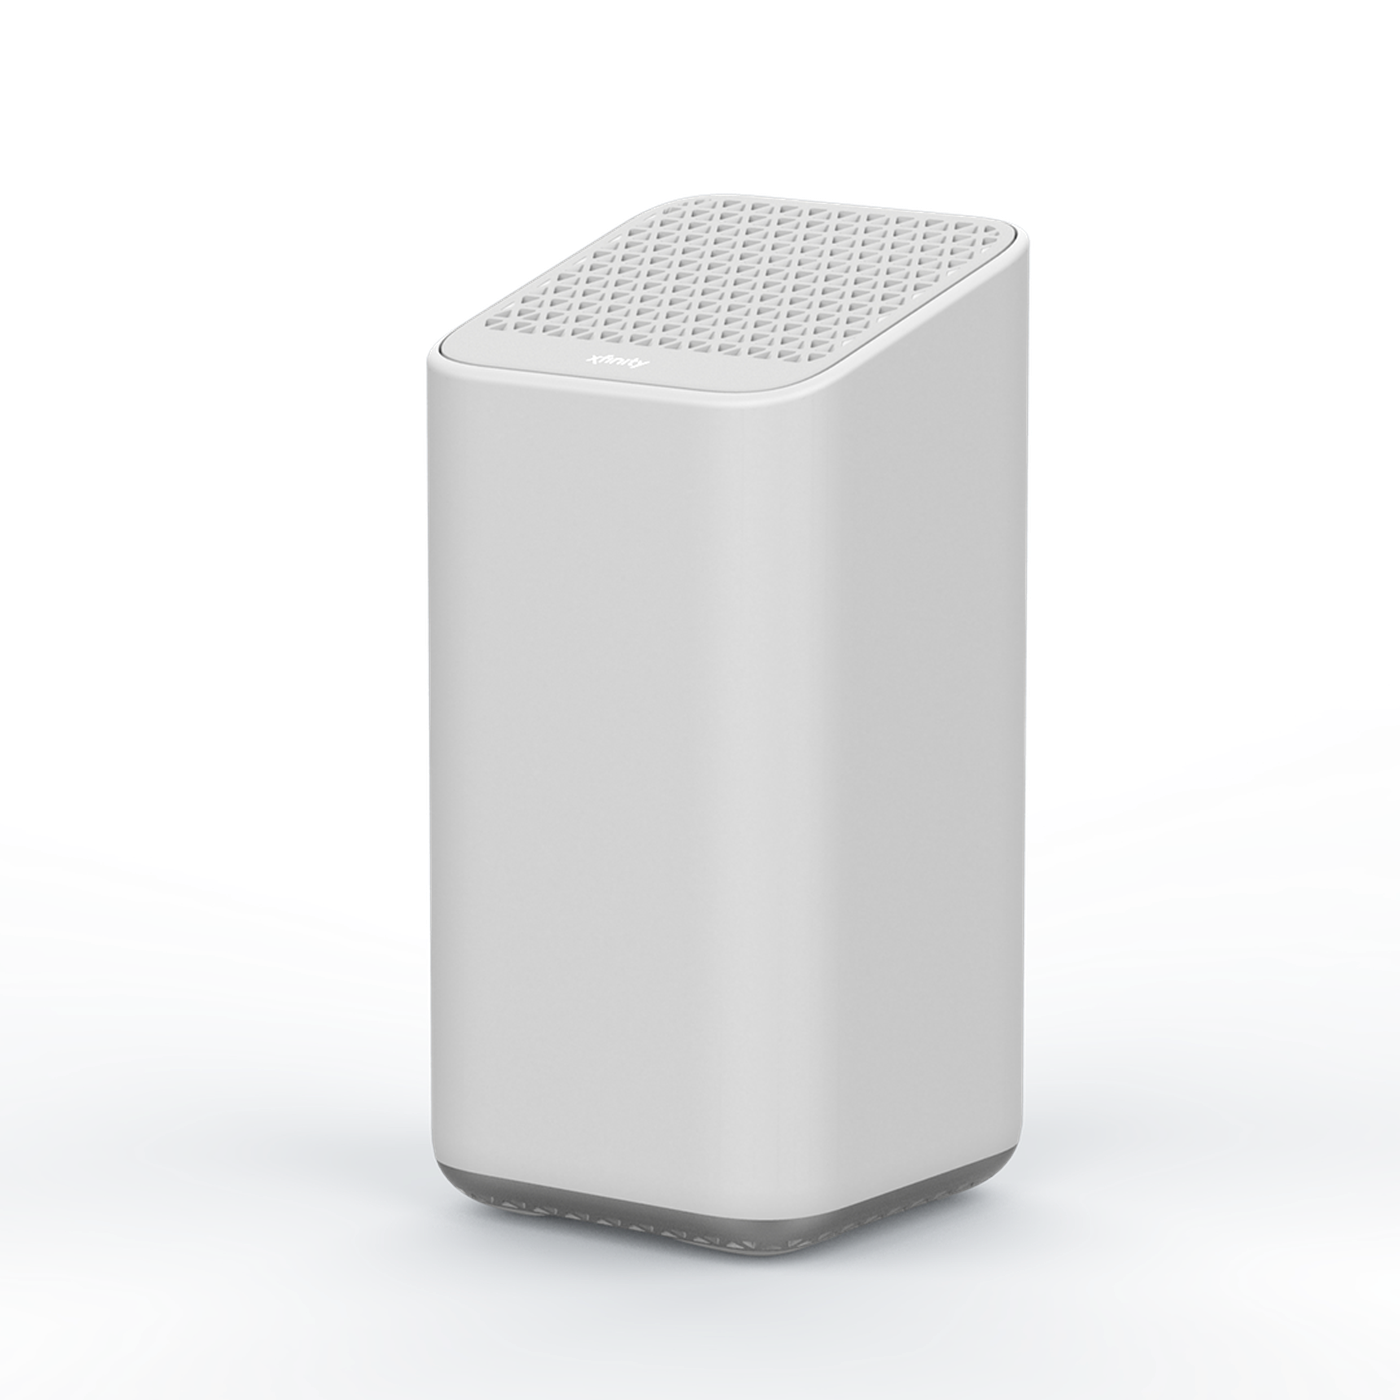 Comcast Launches Wi Fi 6 Gateway Makes Xfi Advanced Cybersecurity Free The Verge